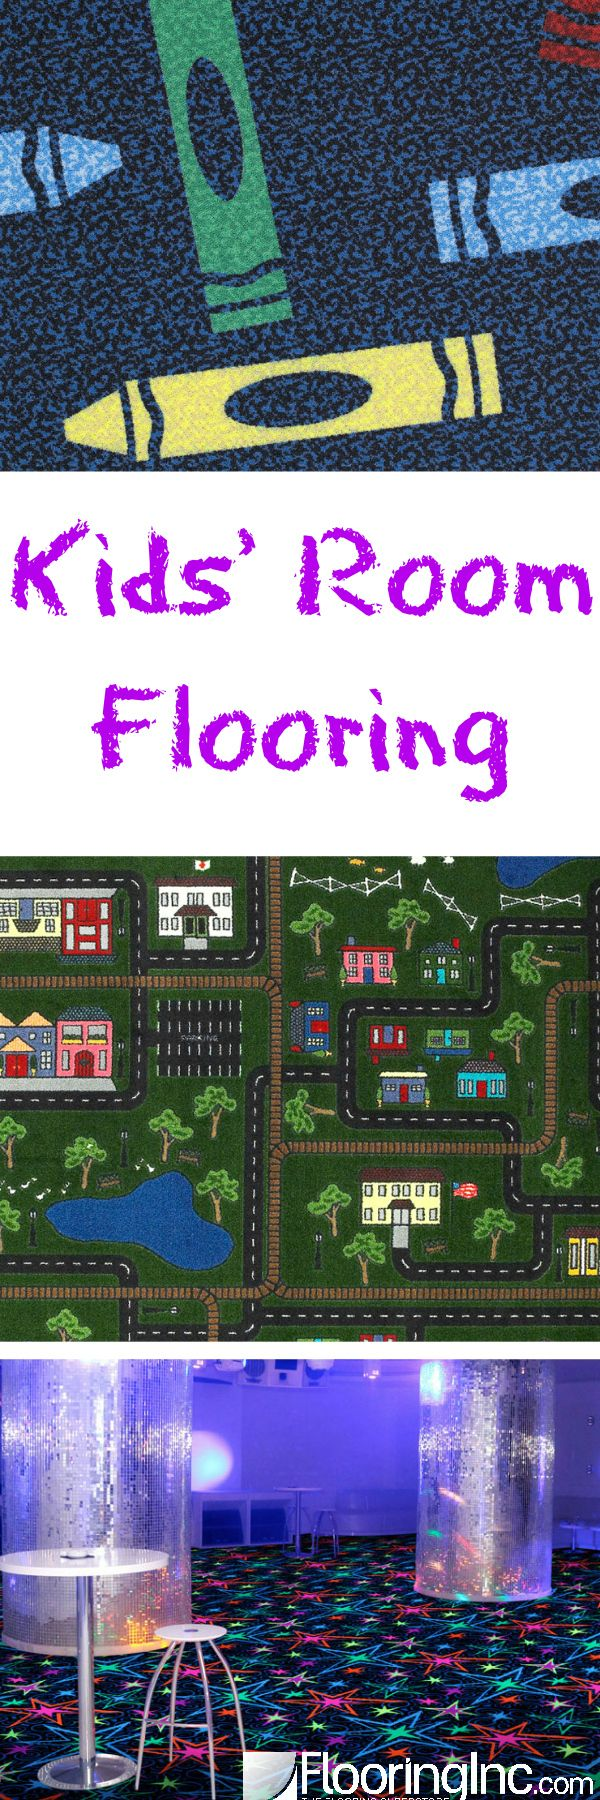 Harley color carpet tiles - Kids Room Flooring Lots Of Ideas For Your Little One S Perfect Bedroom